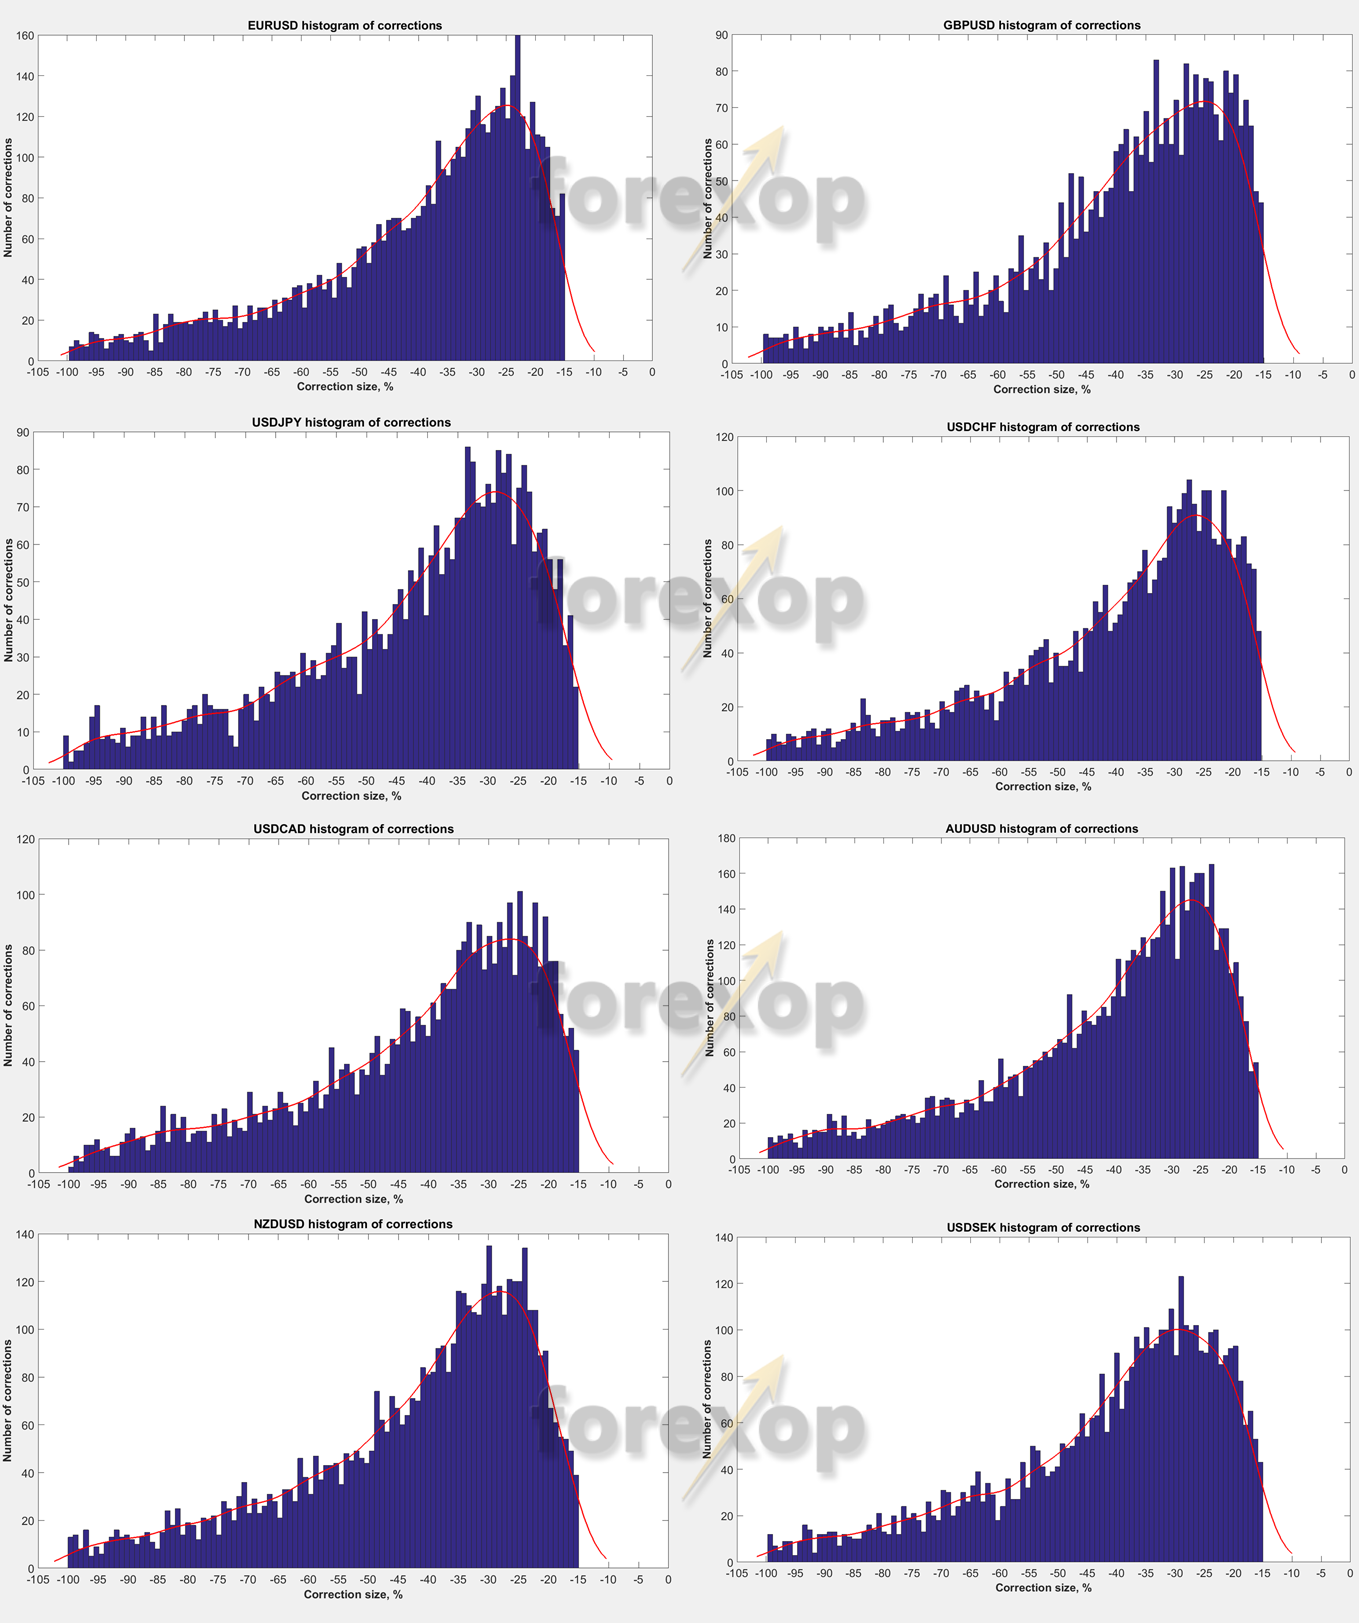 Figure 6. Histogram of all corrections greater than 15 % for G10 pairs.